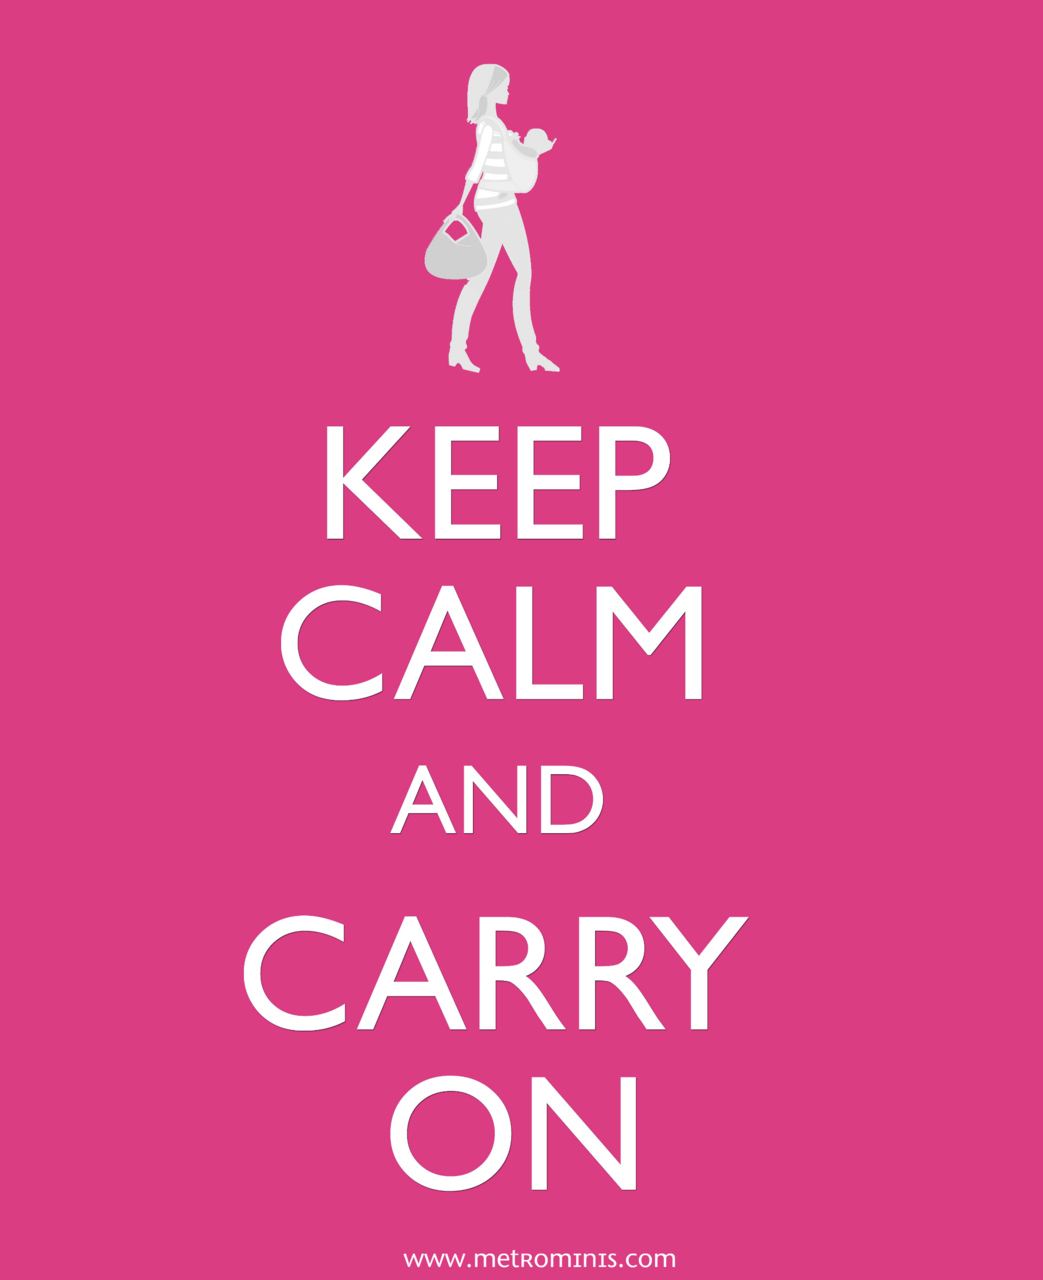 Keep Calm and CARRY on! www.metrominis.com